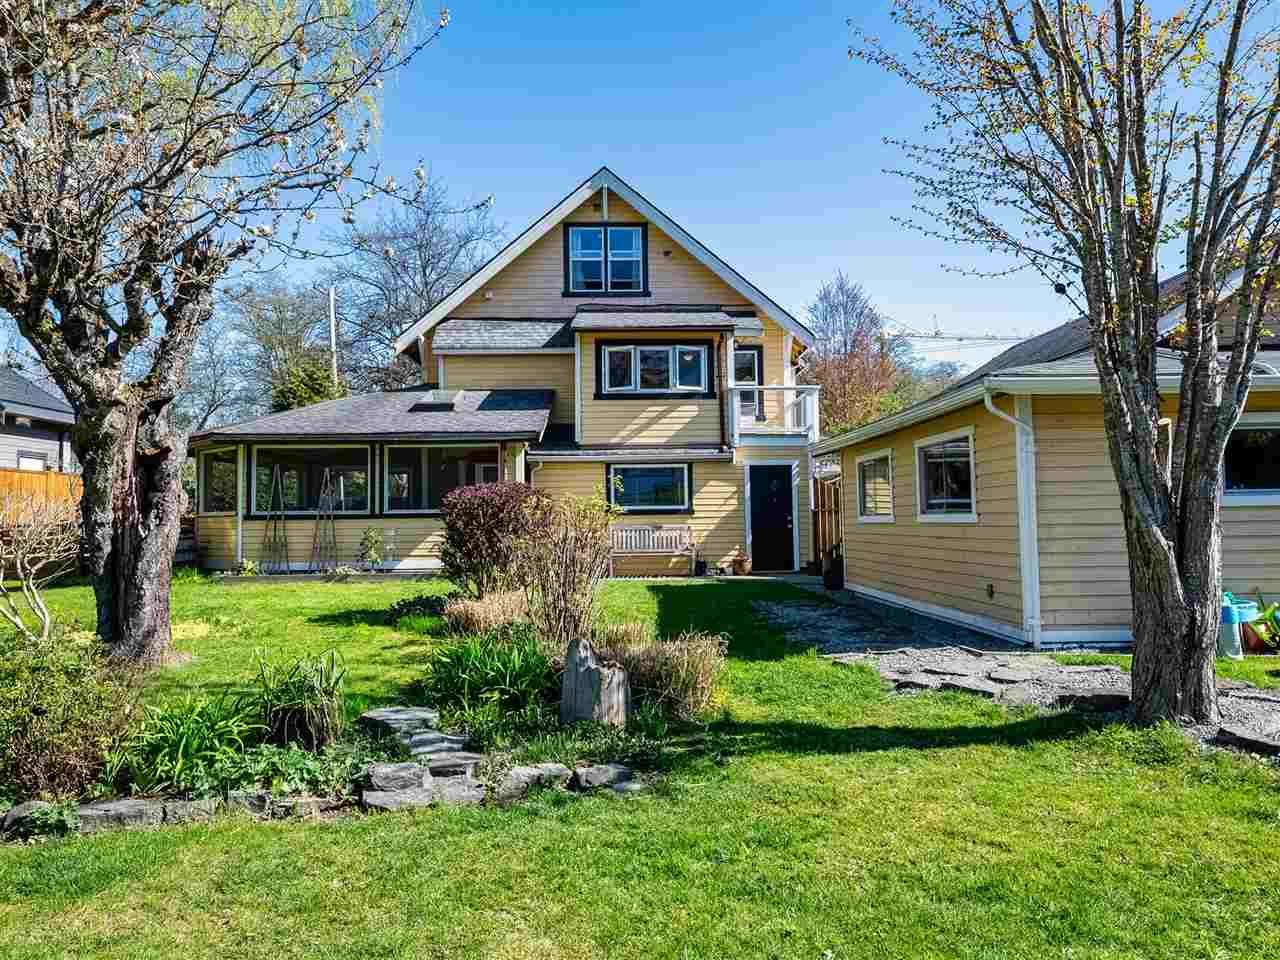 Main Photo: 1150 WILSON Crescent in Squamish: Dentville House for sale : MLS®# R2569427